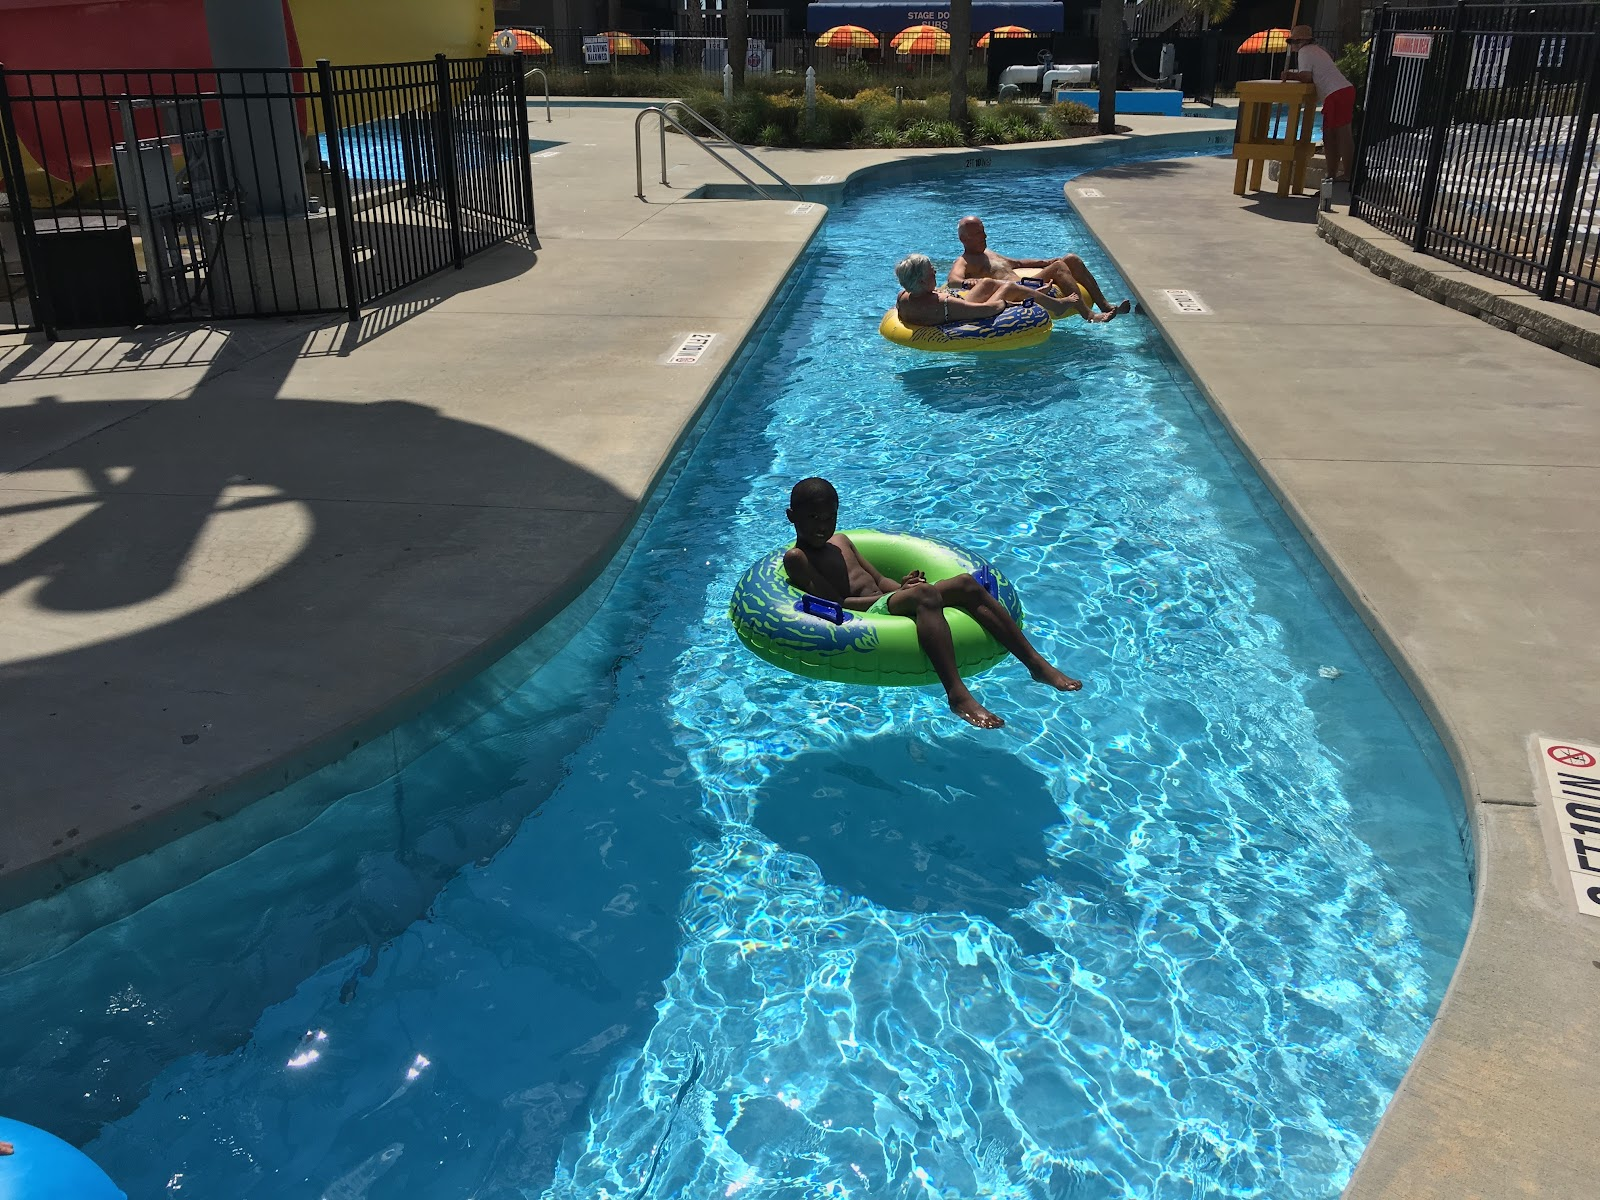 Child and a couple adults lounging in rafts in a lazy river pool